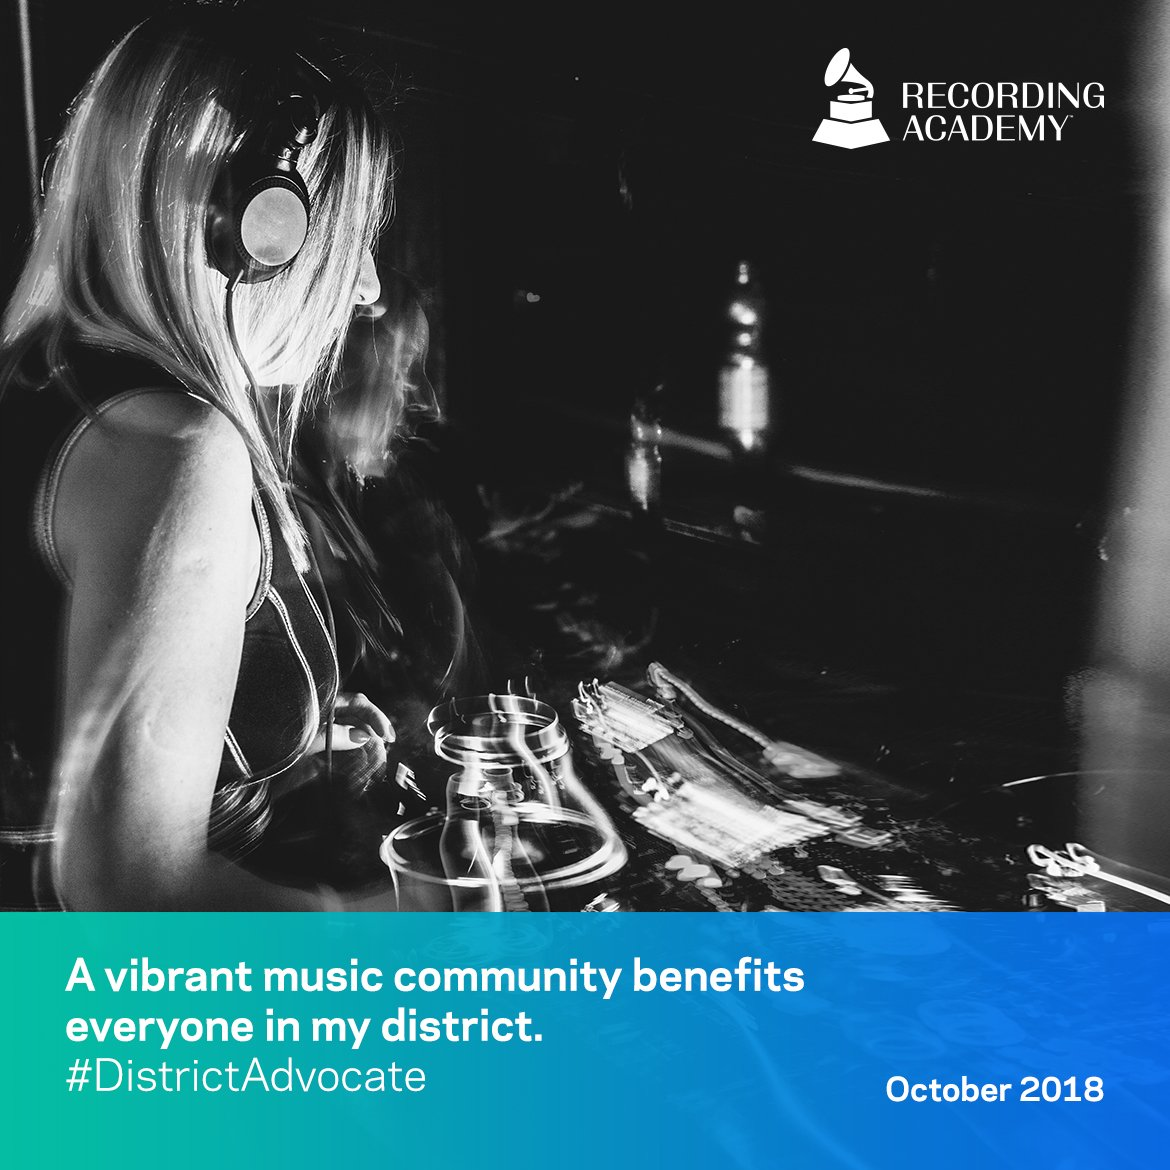 muaic modernization act - a vibrant music community benefits everyone in my district